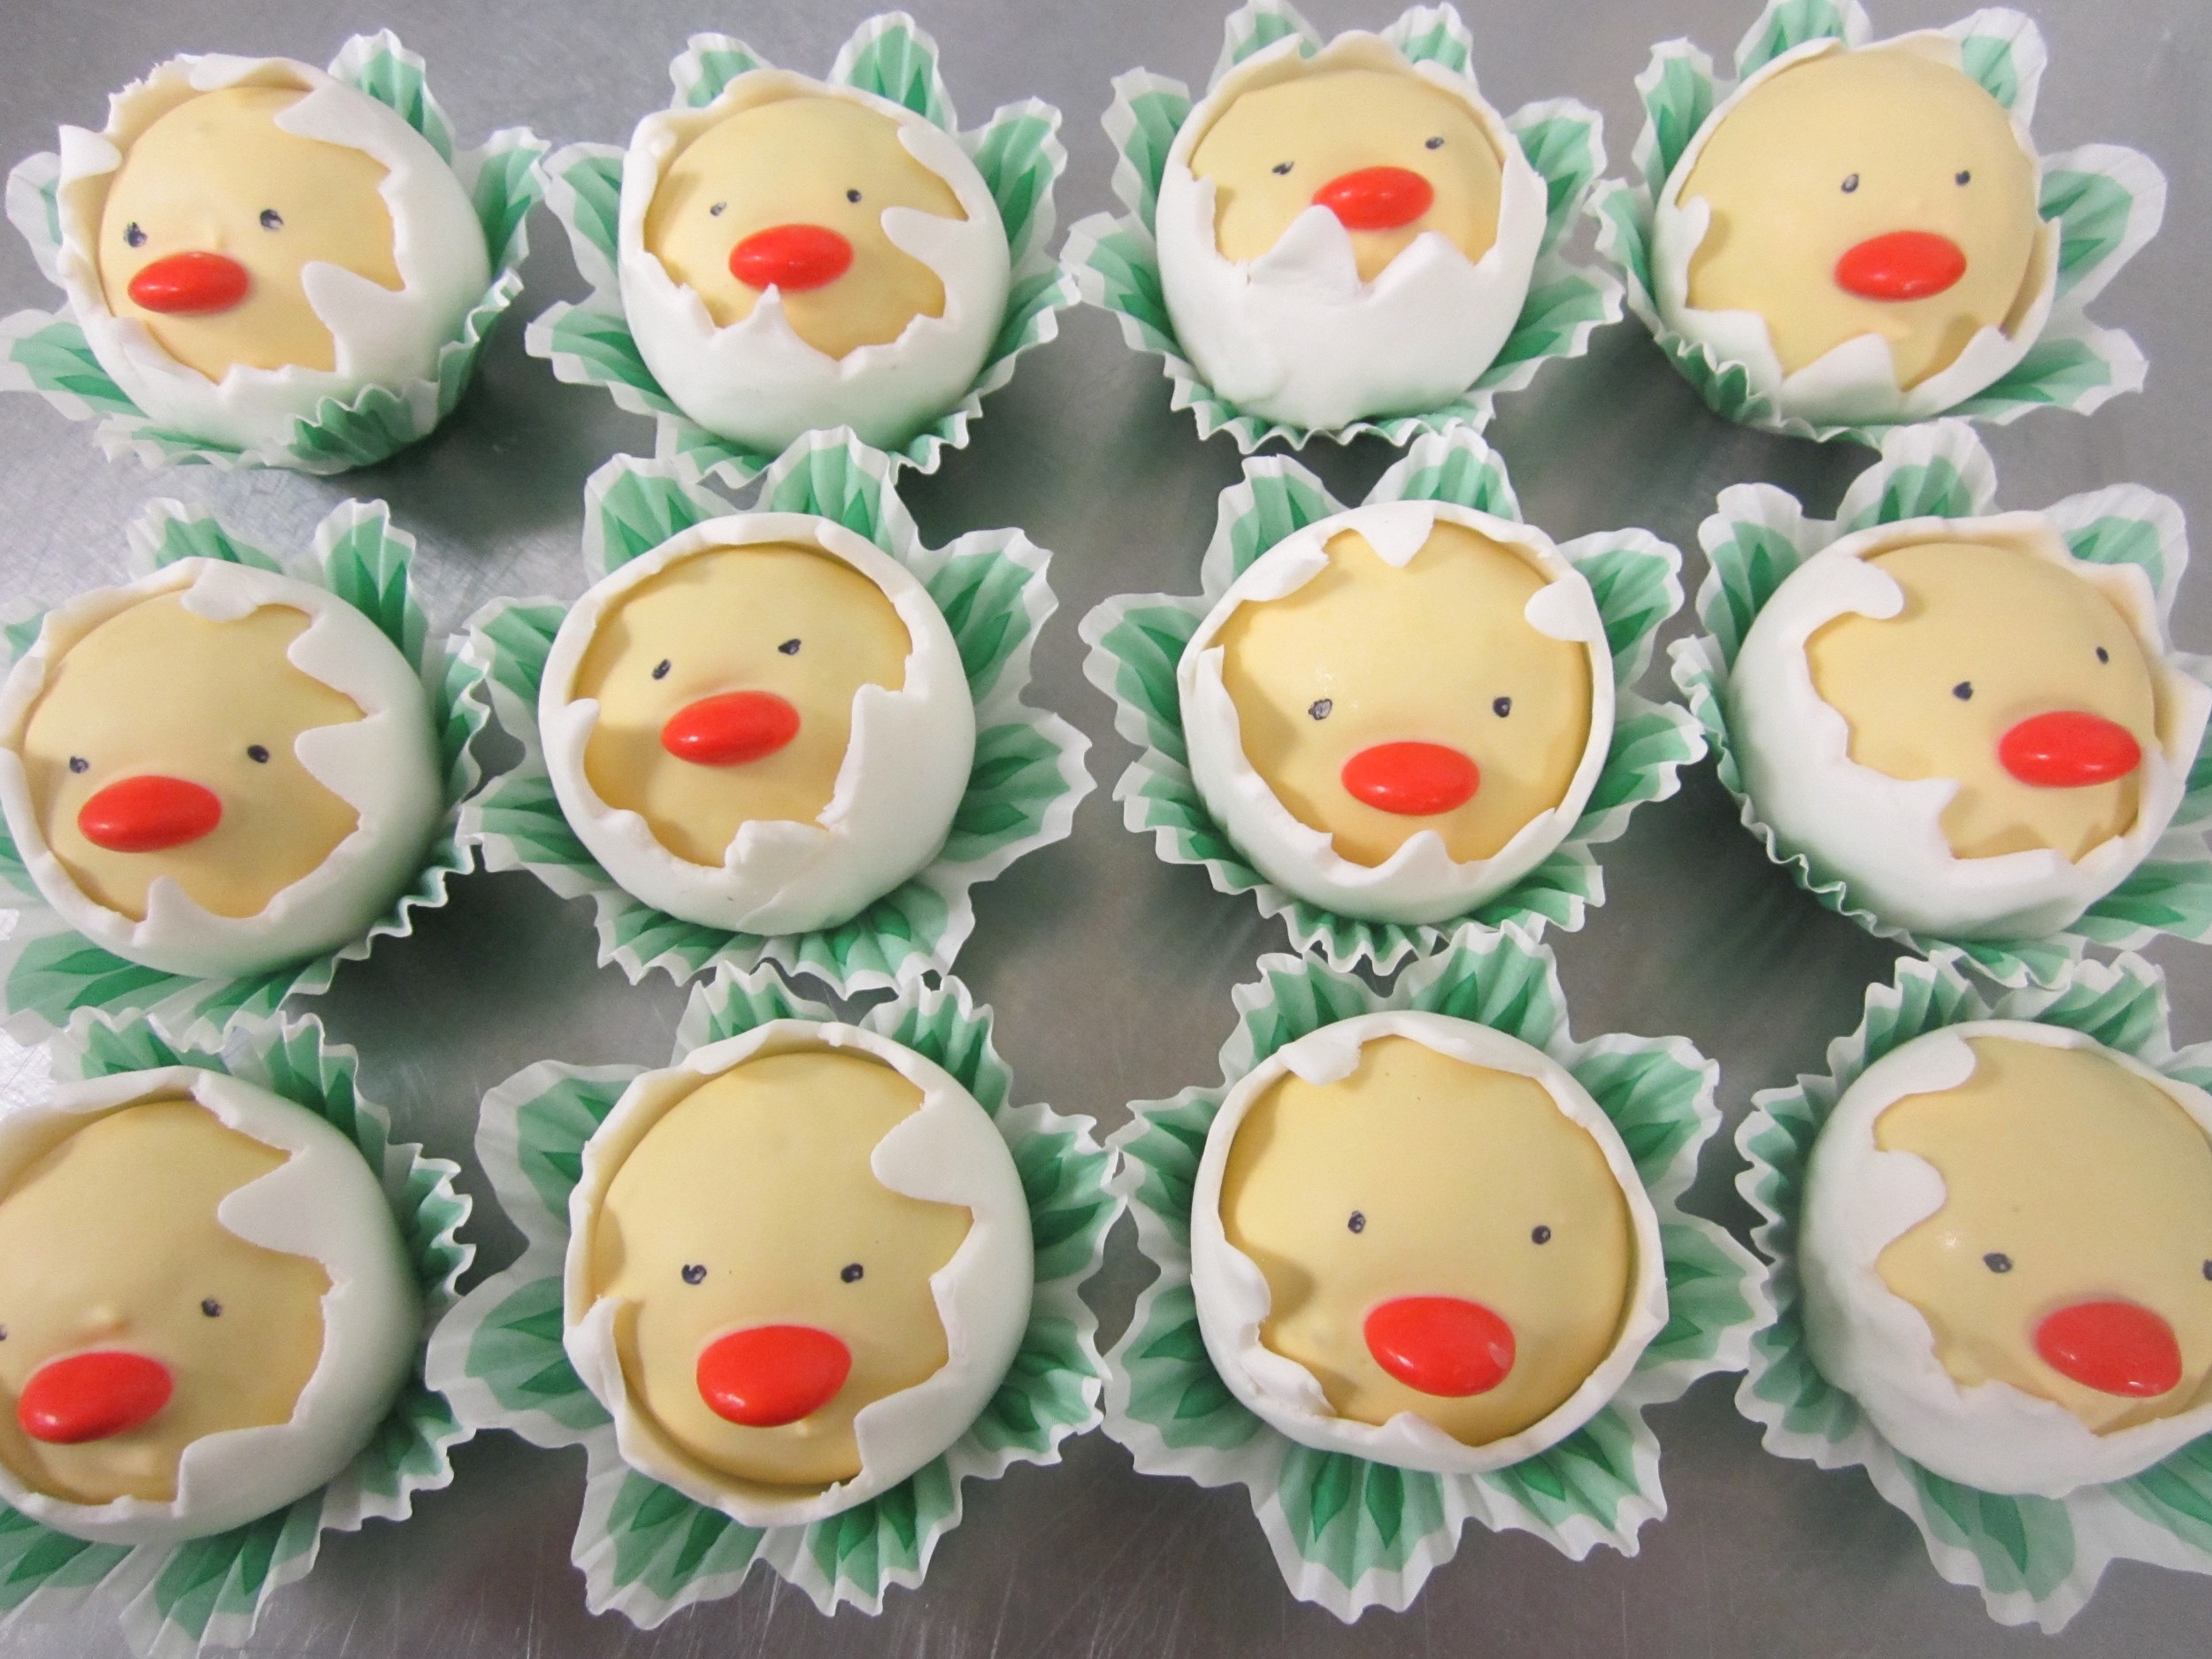 bon bons- chick in eggs.jpg